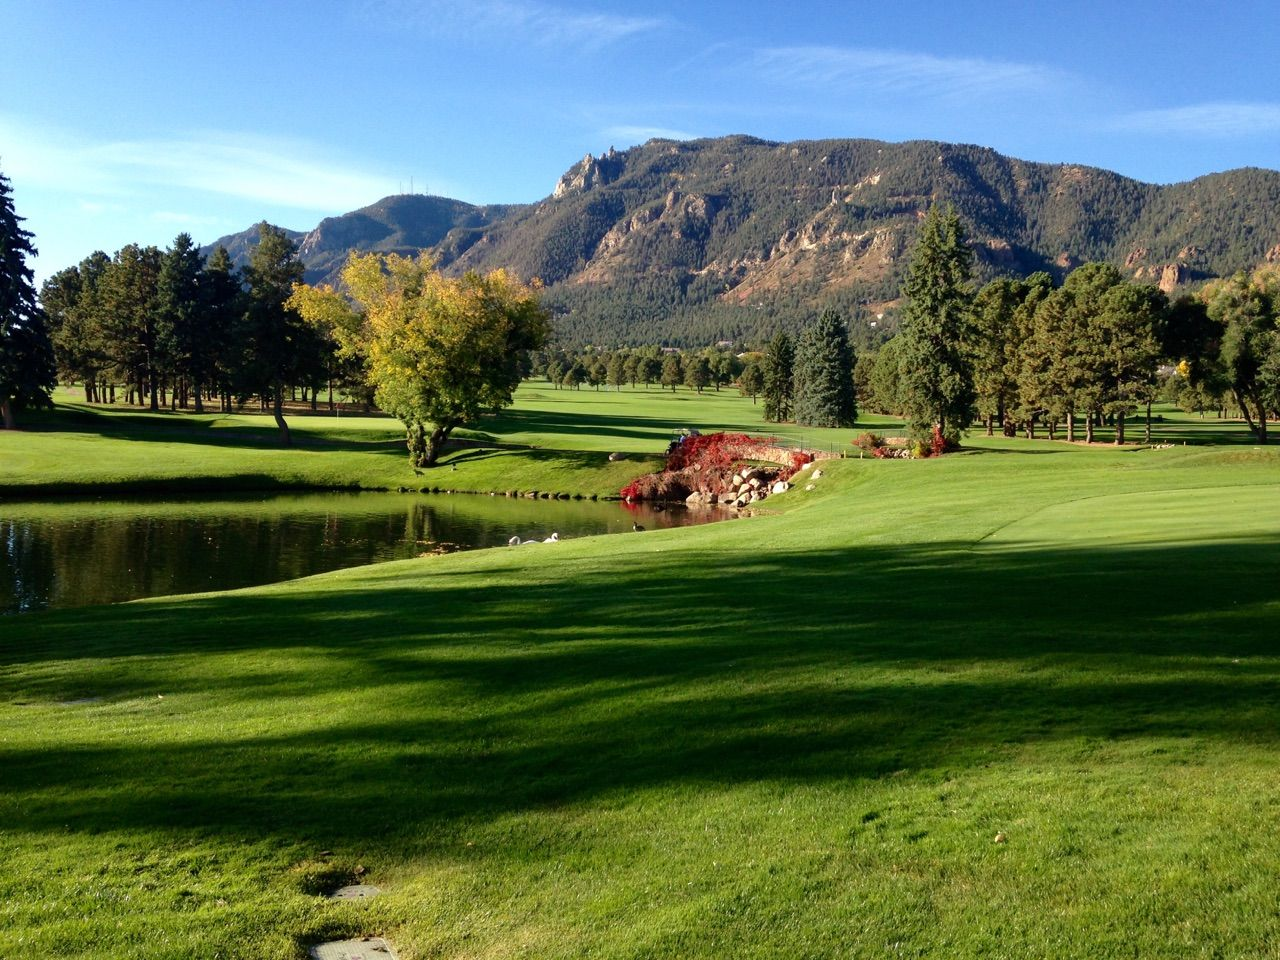 Great Photo Of The East Golf Course Taken By Clair D Morning Fall 2015 Golf Courses